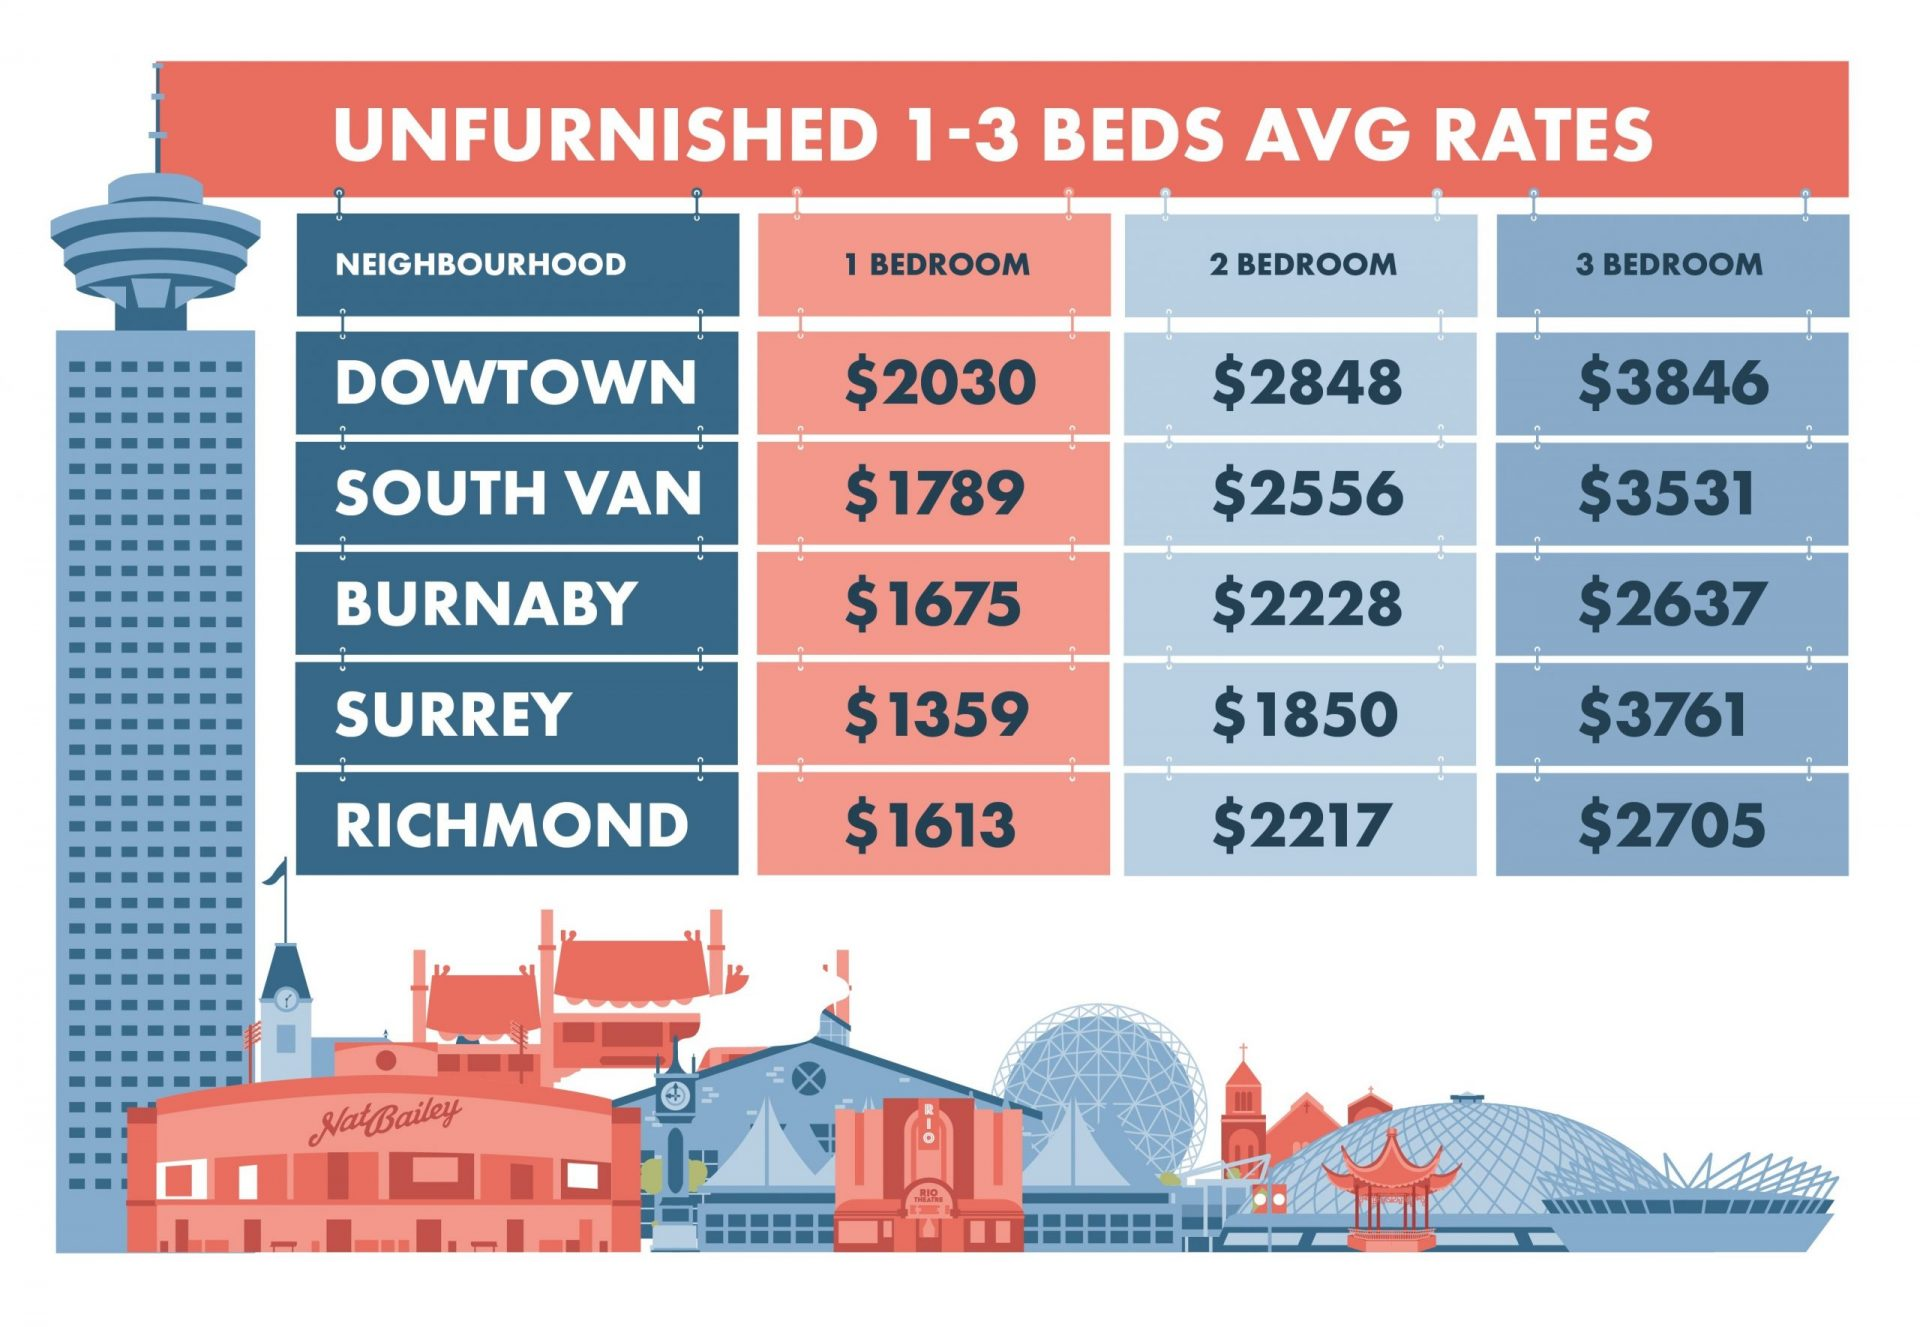 Vancouver Average Apartment Rental Rates by Neighbourhood